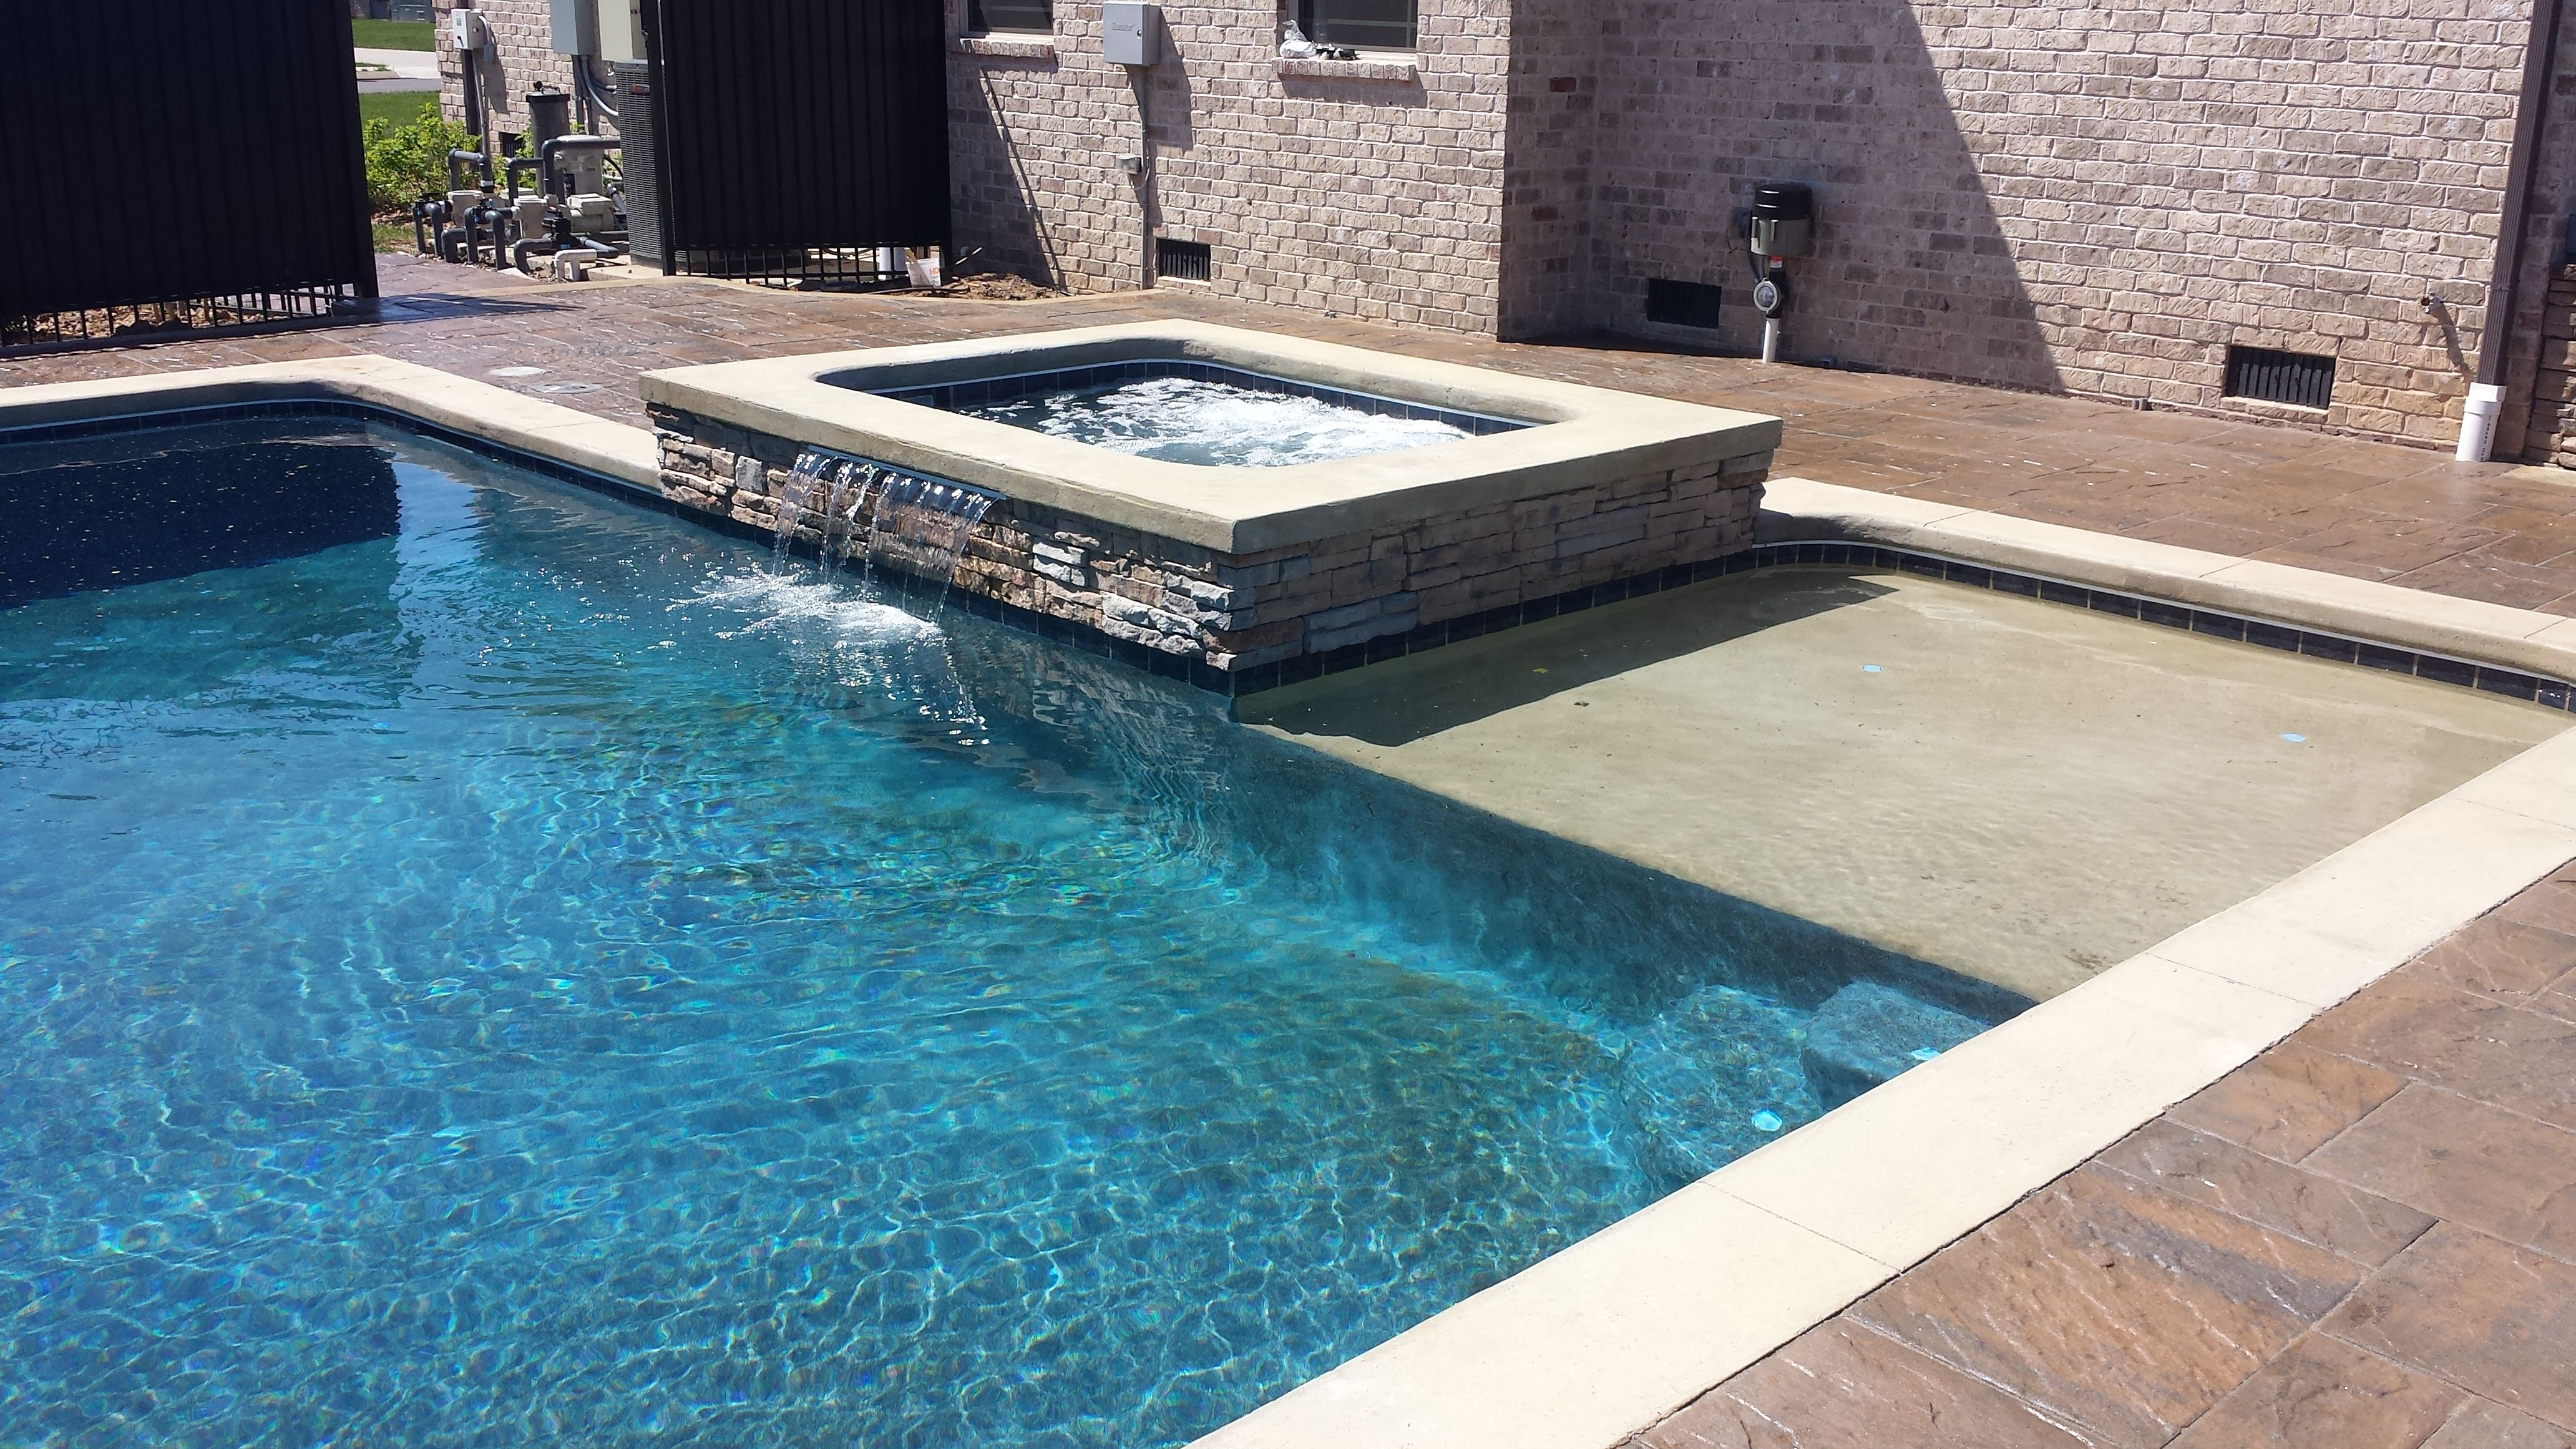 This pool features a sand color tanning ledge and a